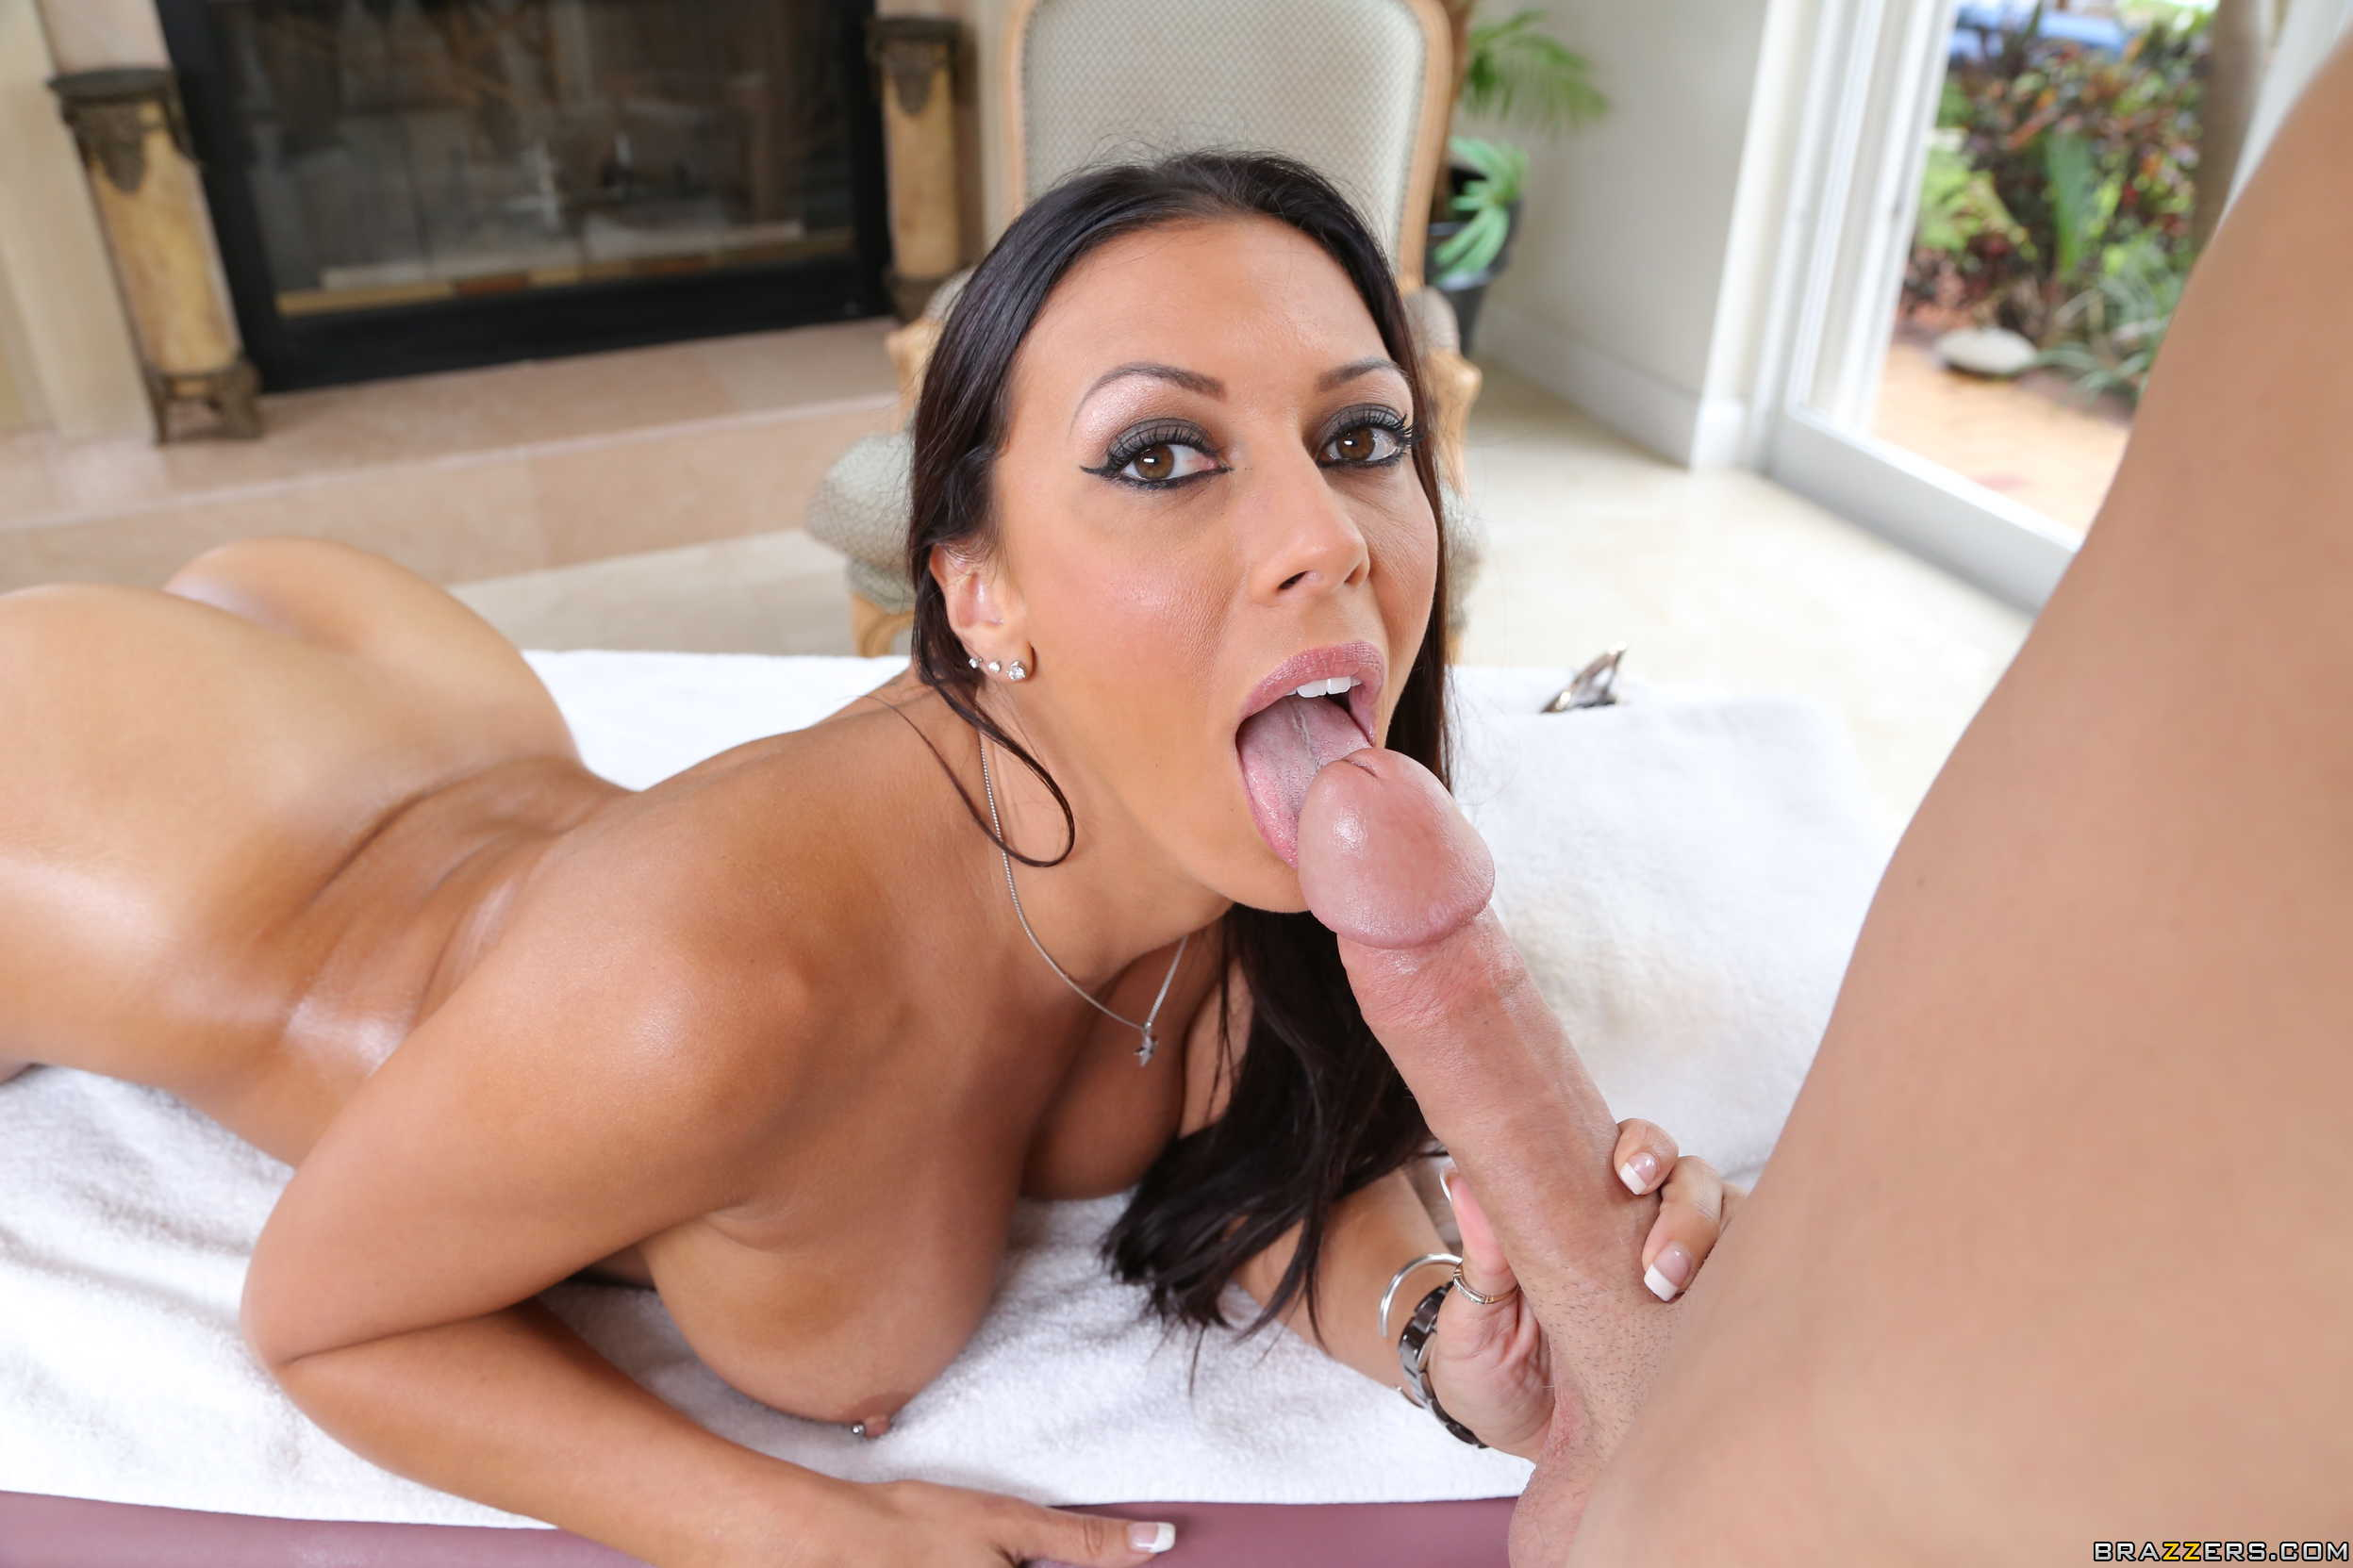 Conversations! You Rachel starr having sex